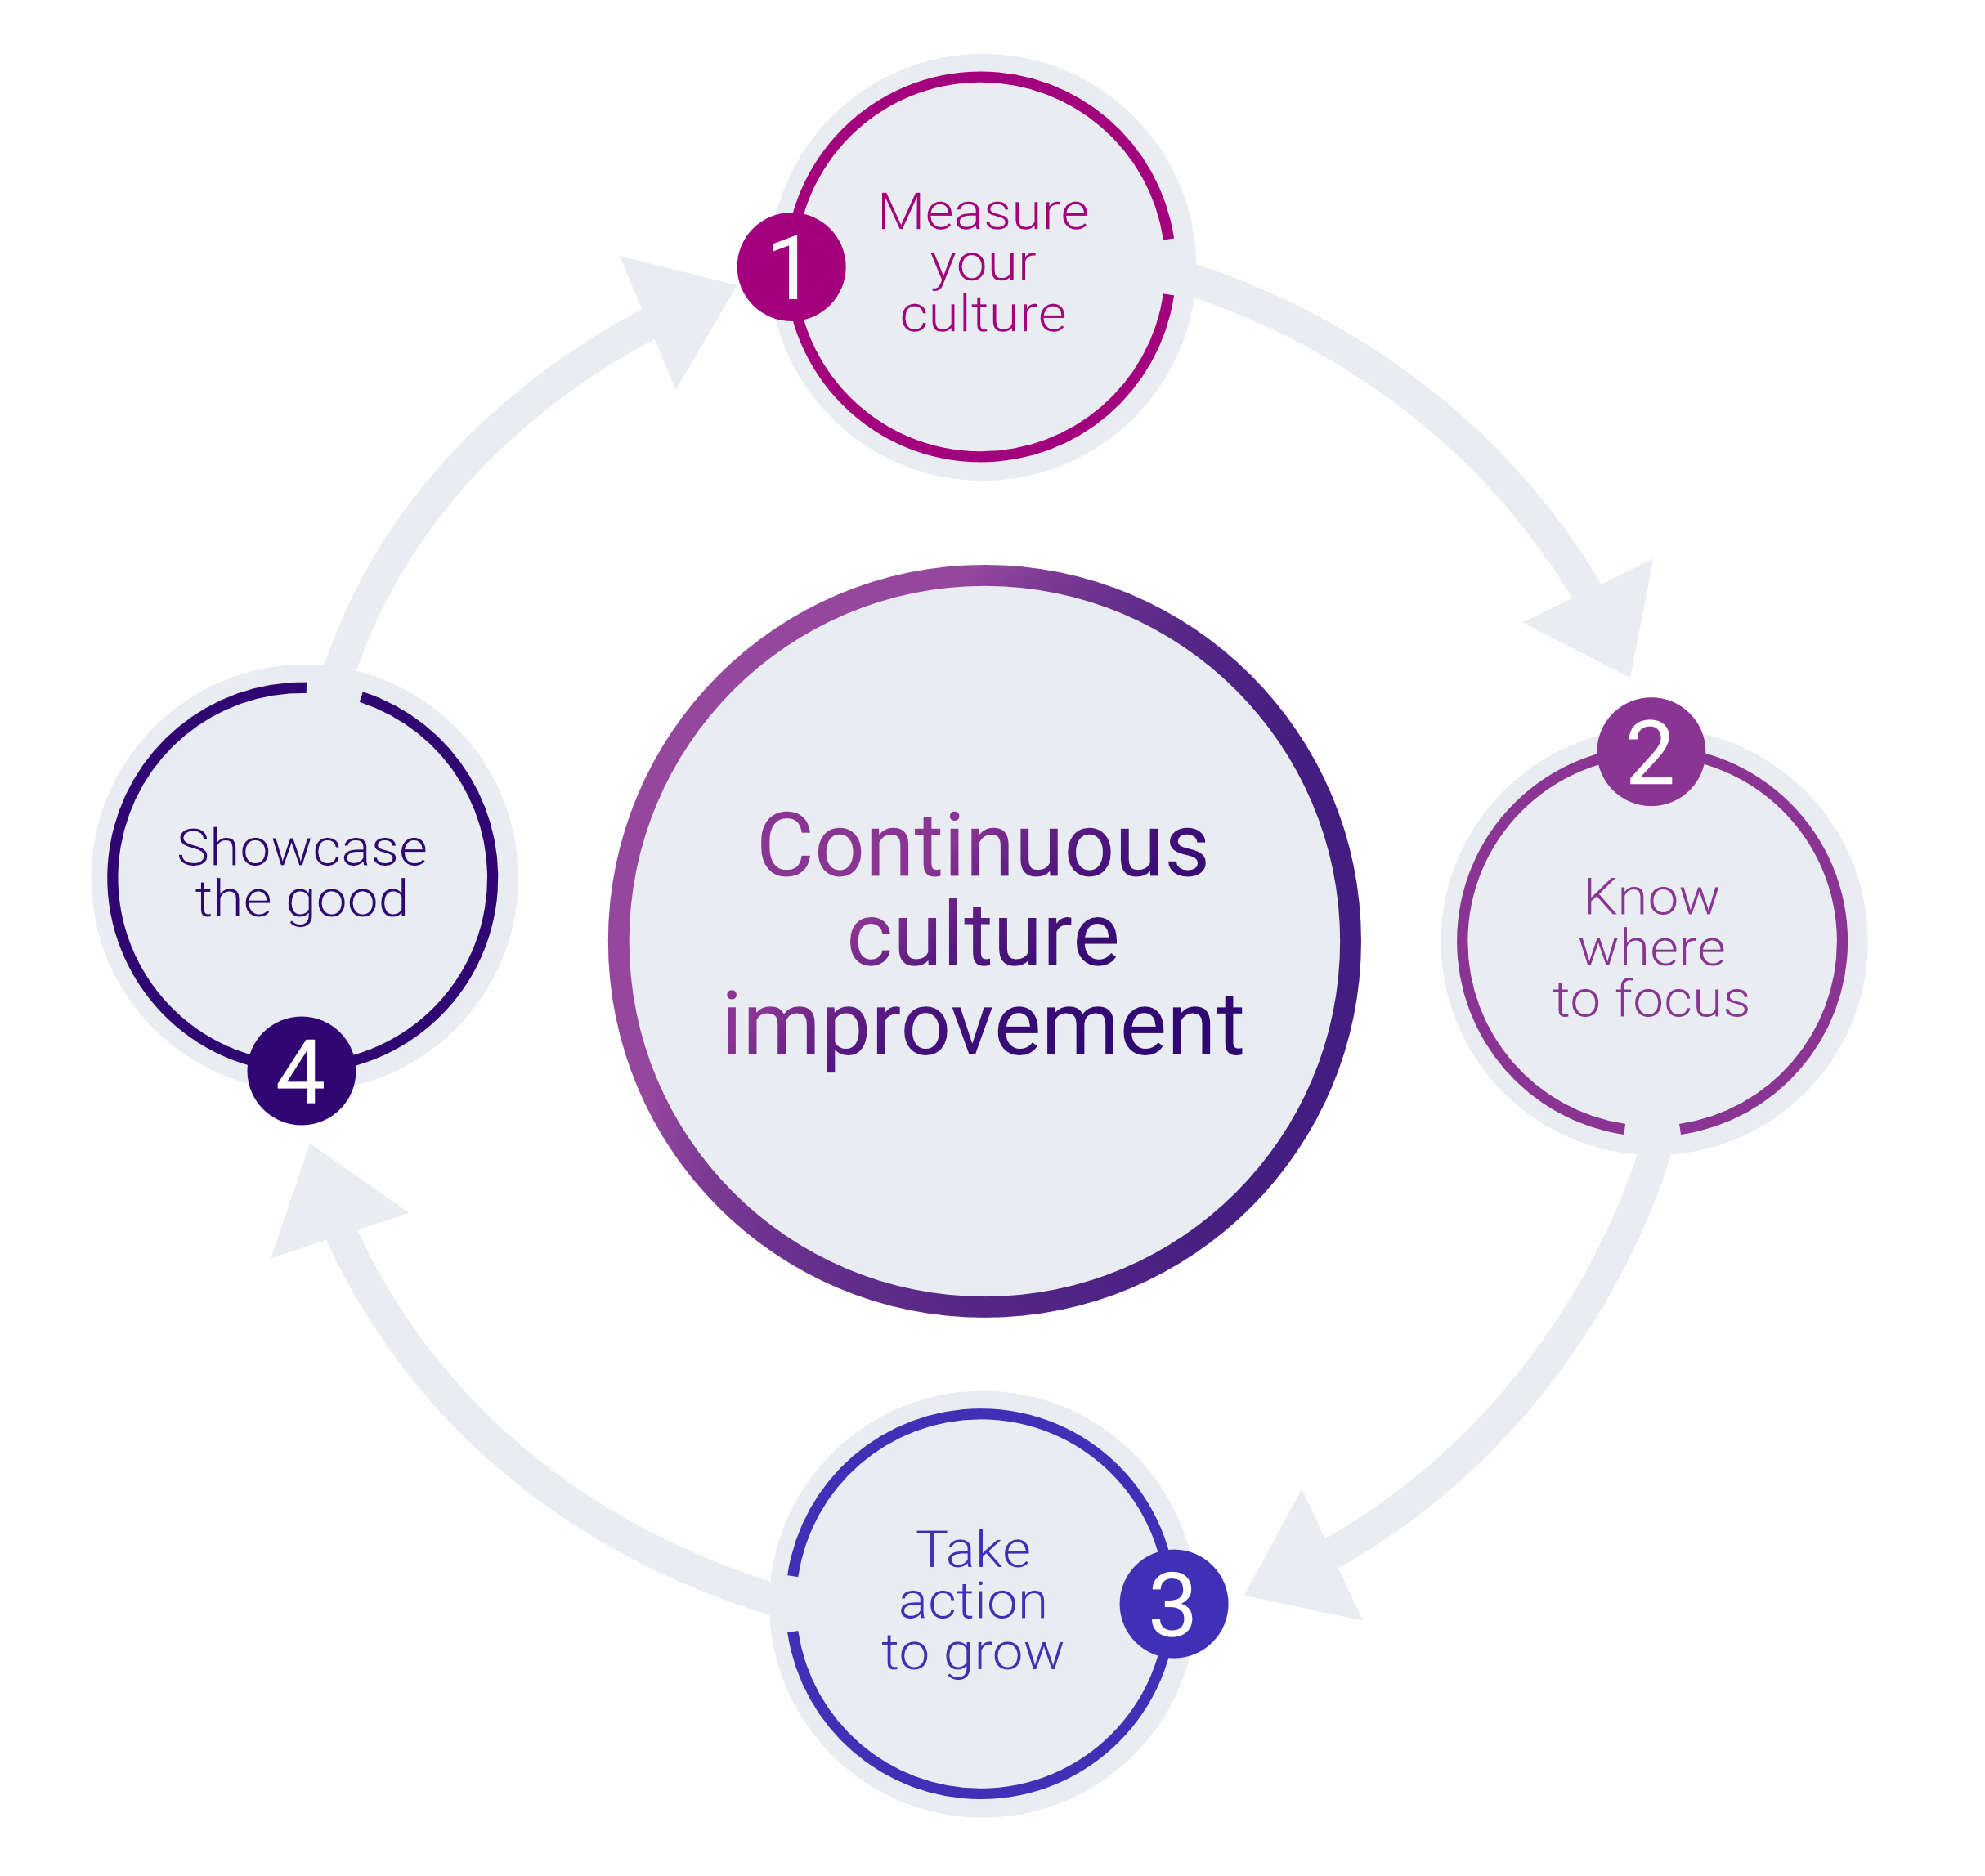 Continuous culture improvement